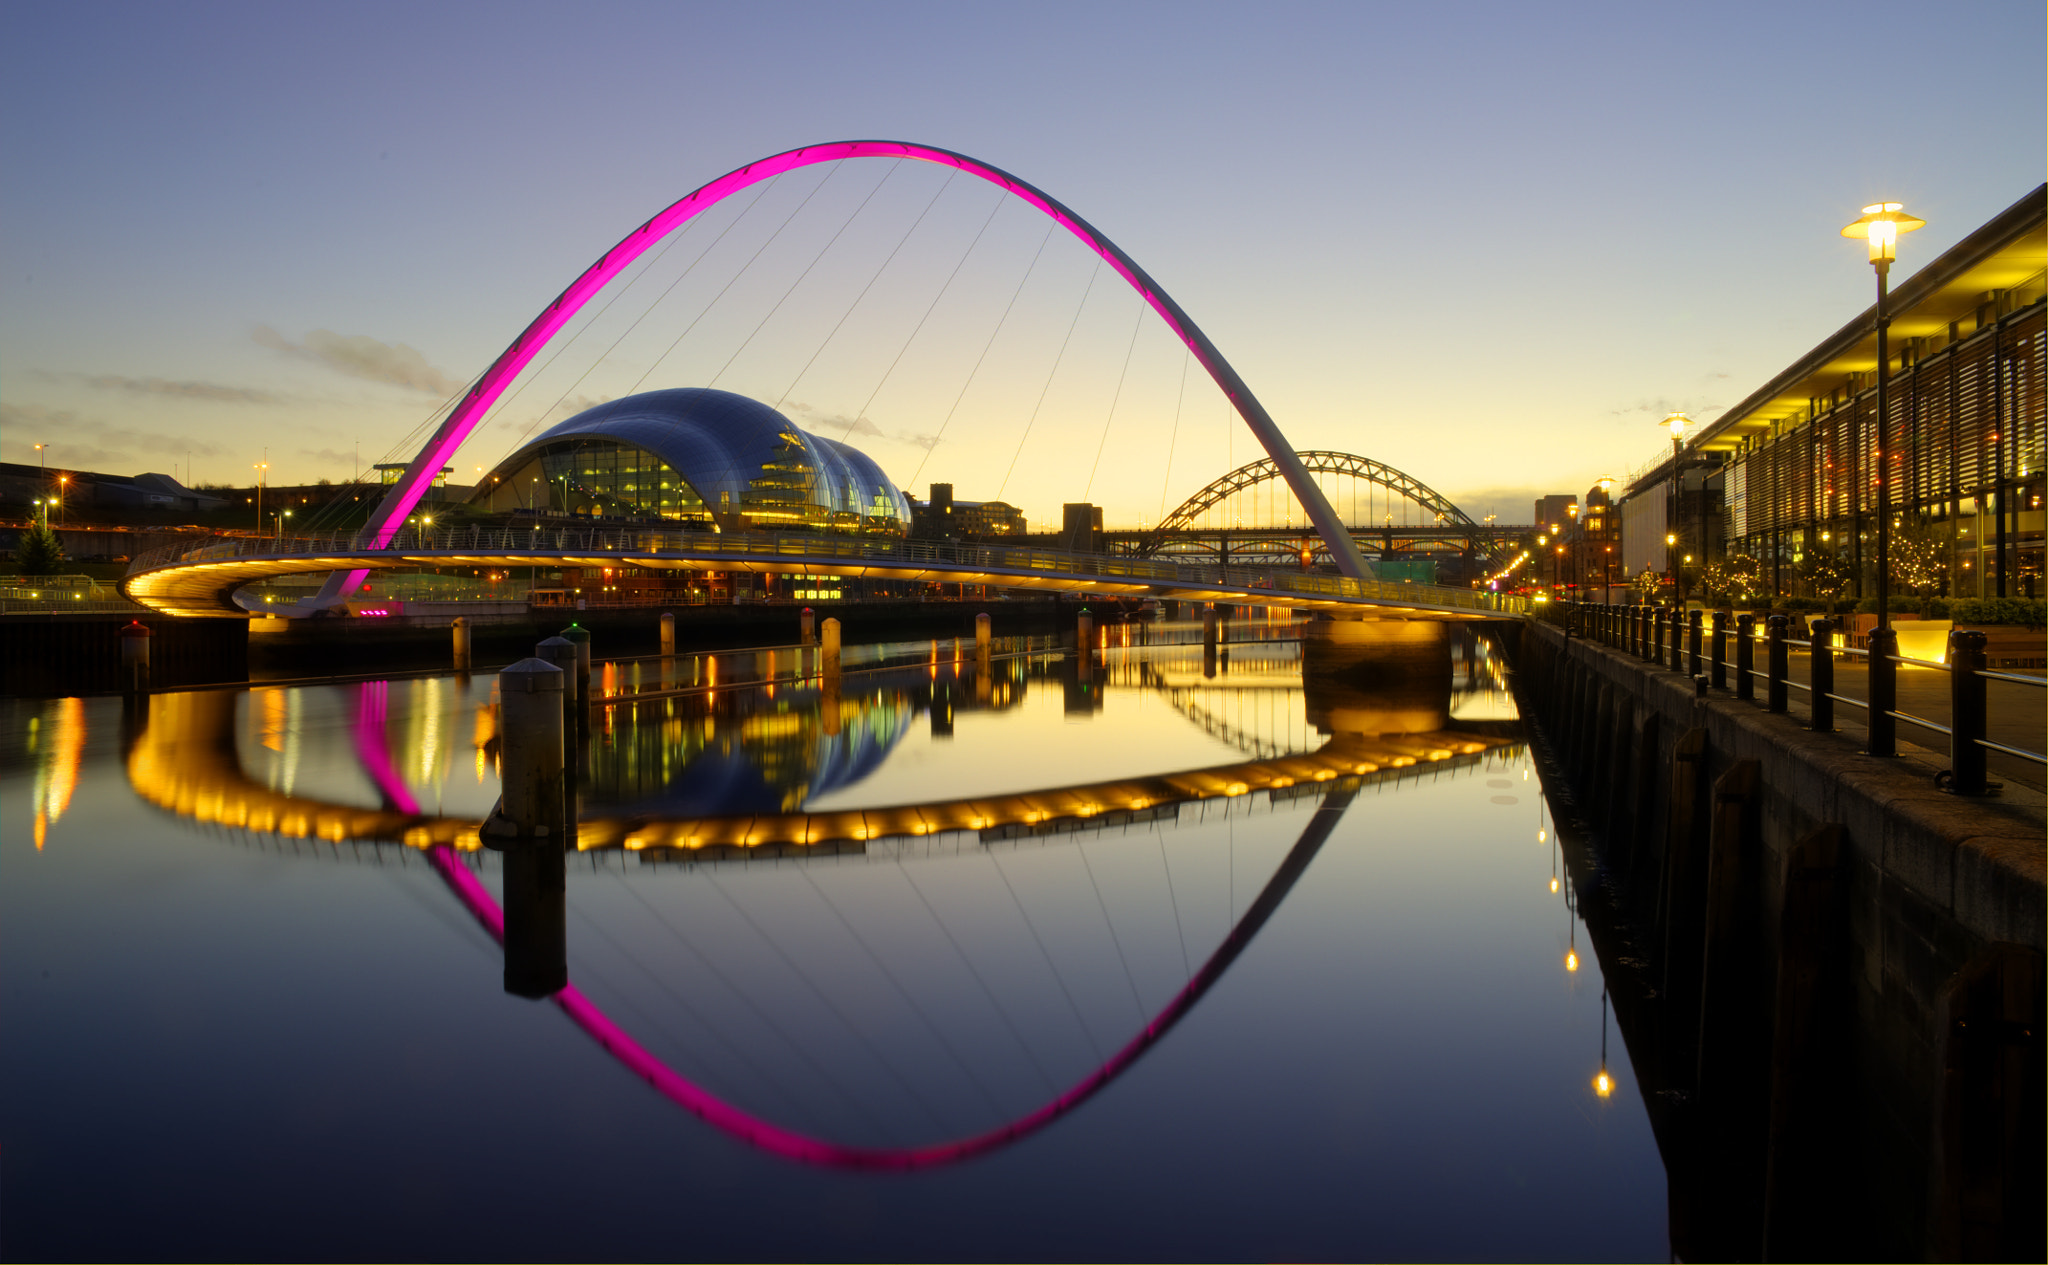 Photograph On the Tyne by David Atkinson on 500px